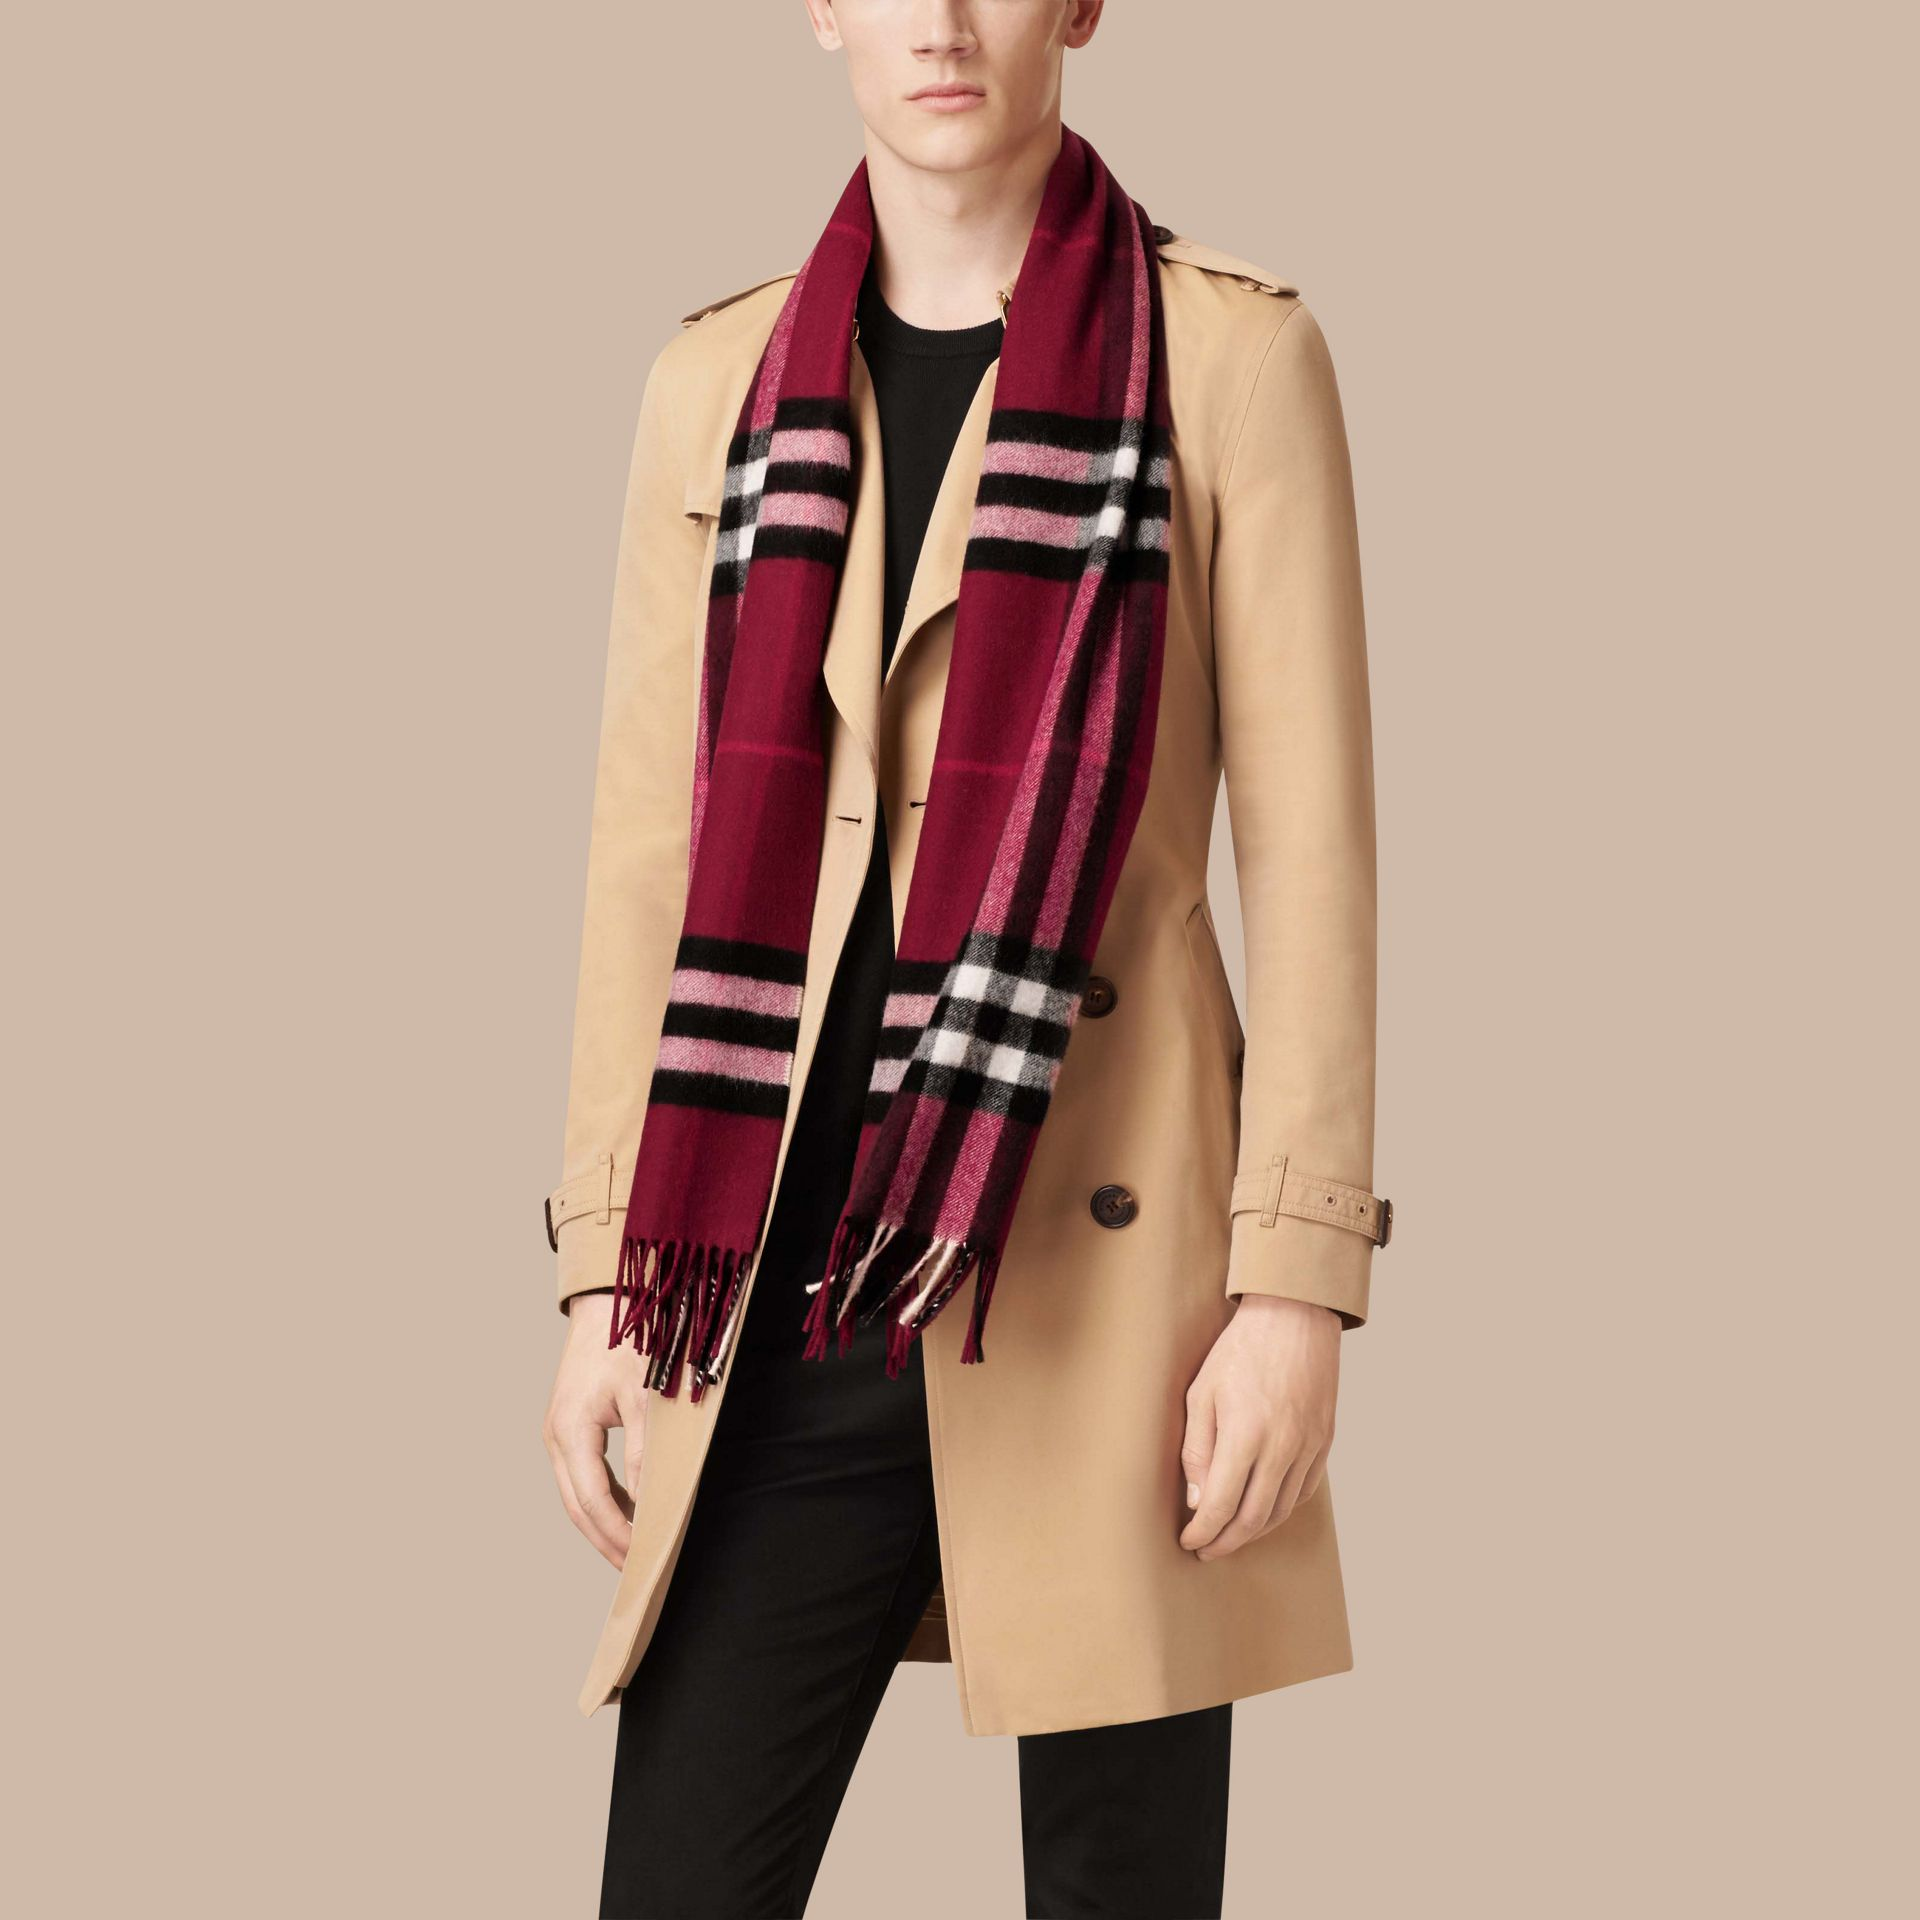 Plum check The Classic Cashmere Scarf in Check Plum - gallery image 4